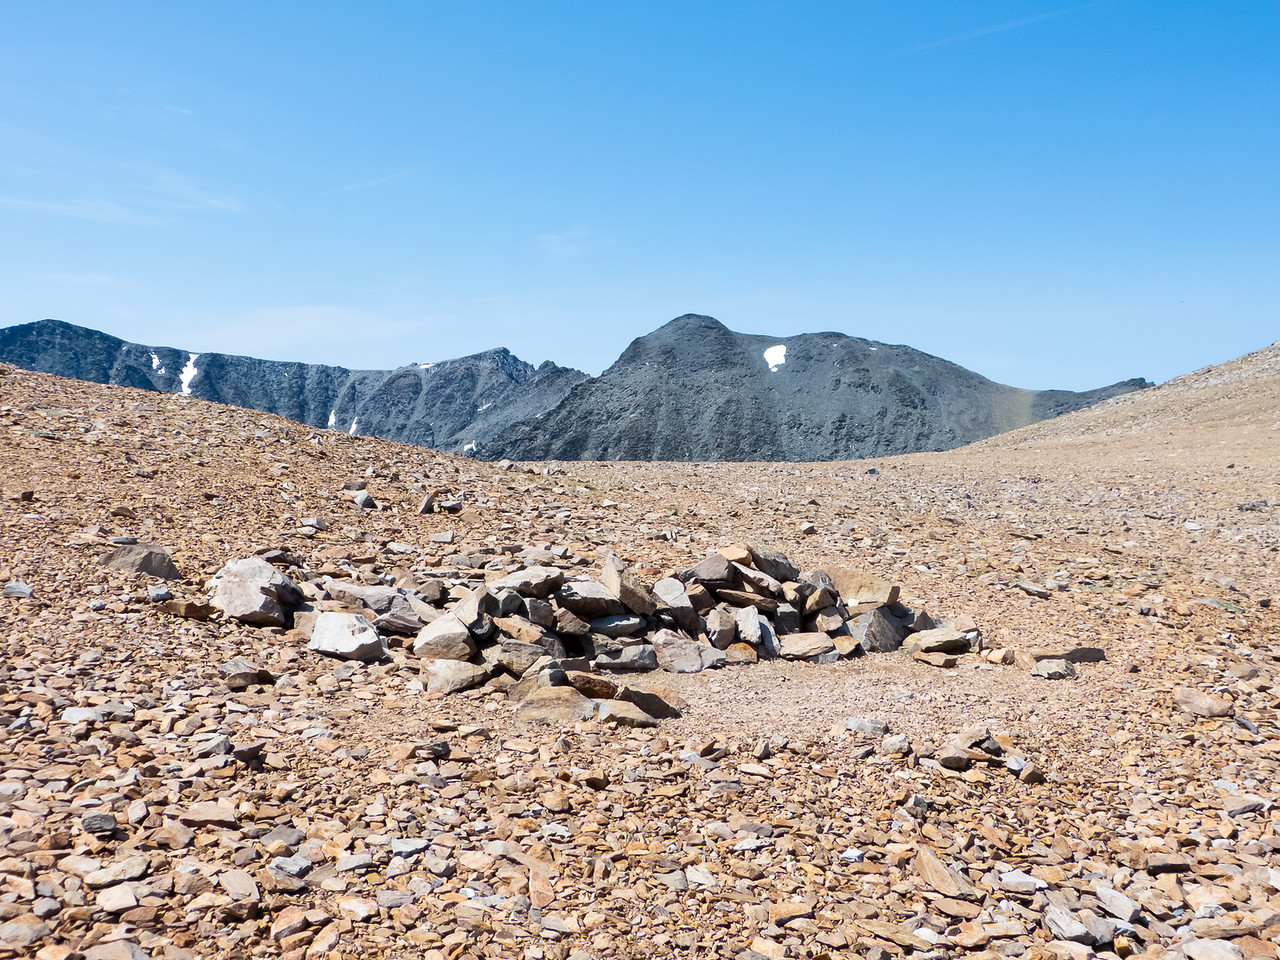 Koip Peak Pass is a barren place, but somebody had a dry camp up here.